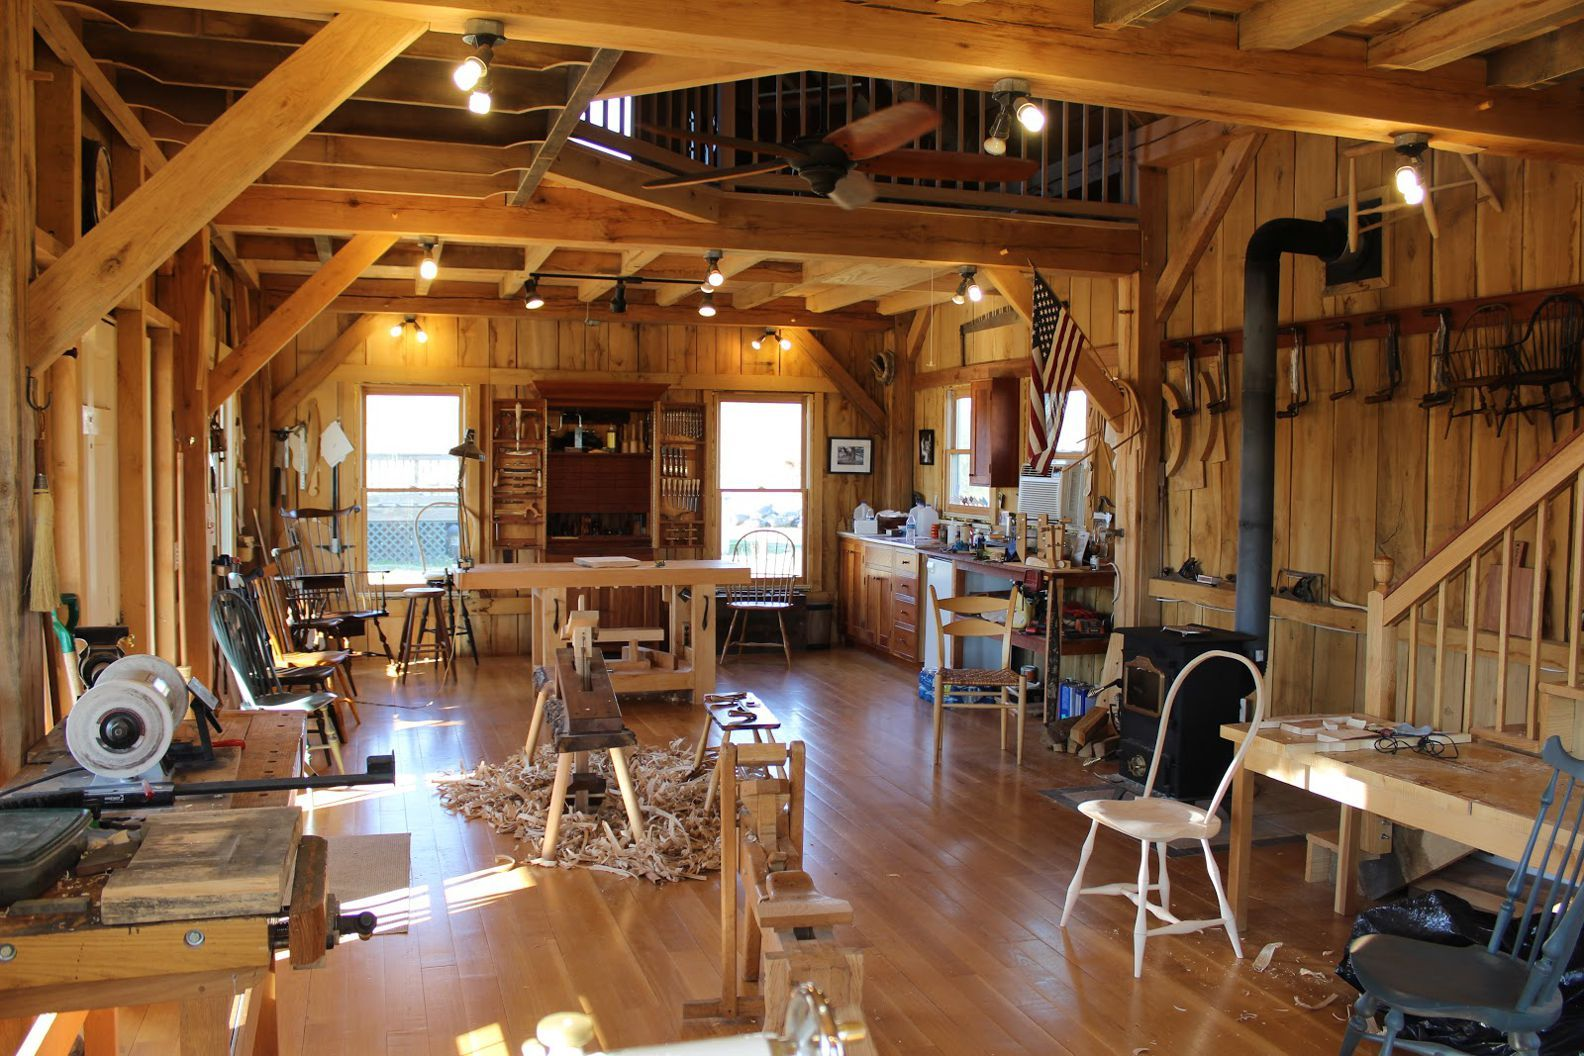 Timberframe Wood Shop with Wood Stove - Timberframe Wood Shop With Wood Stove Shop Buildings Pinterest